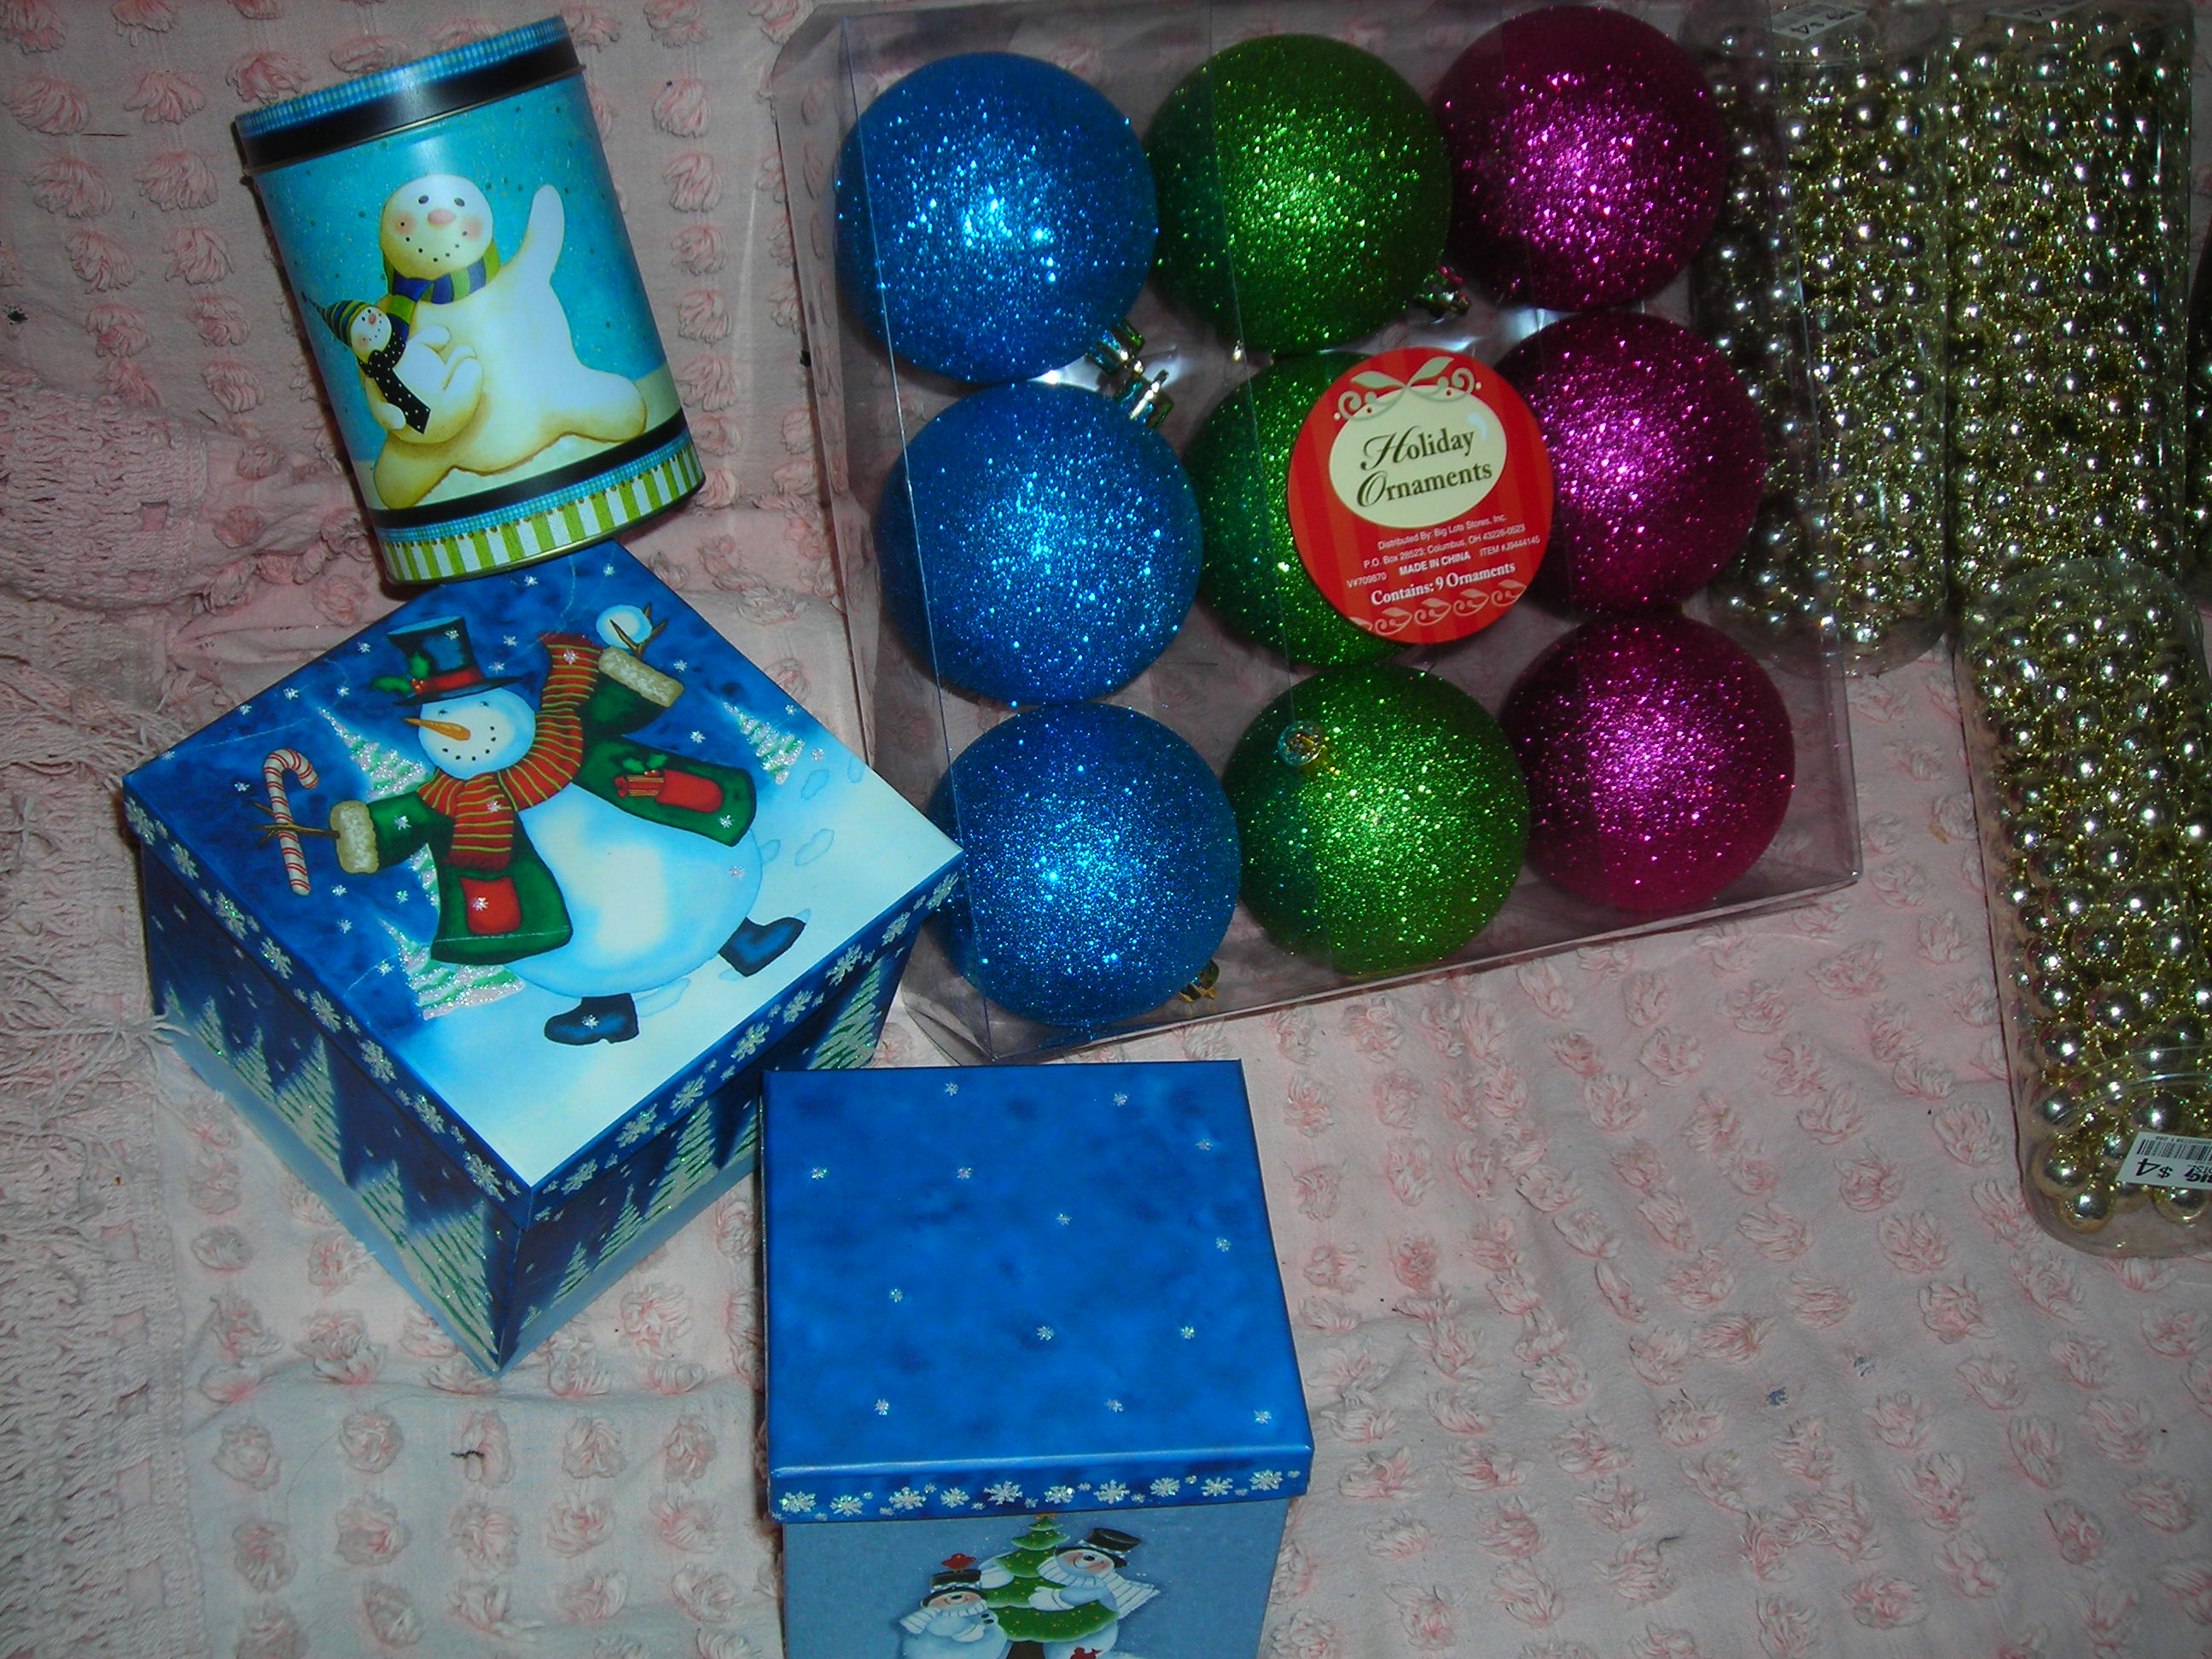 sweet boxes and tin and ornaments and ... and ... and